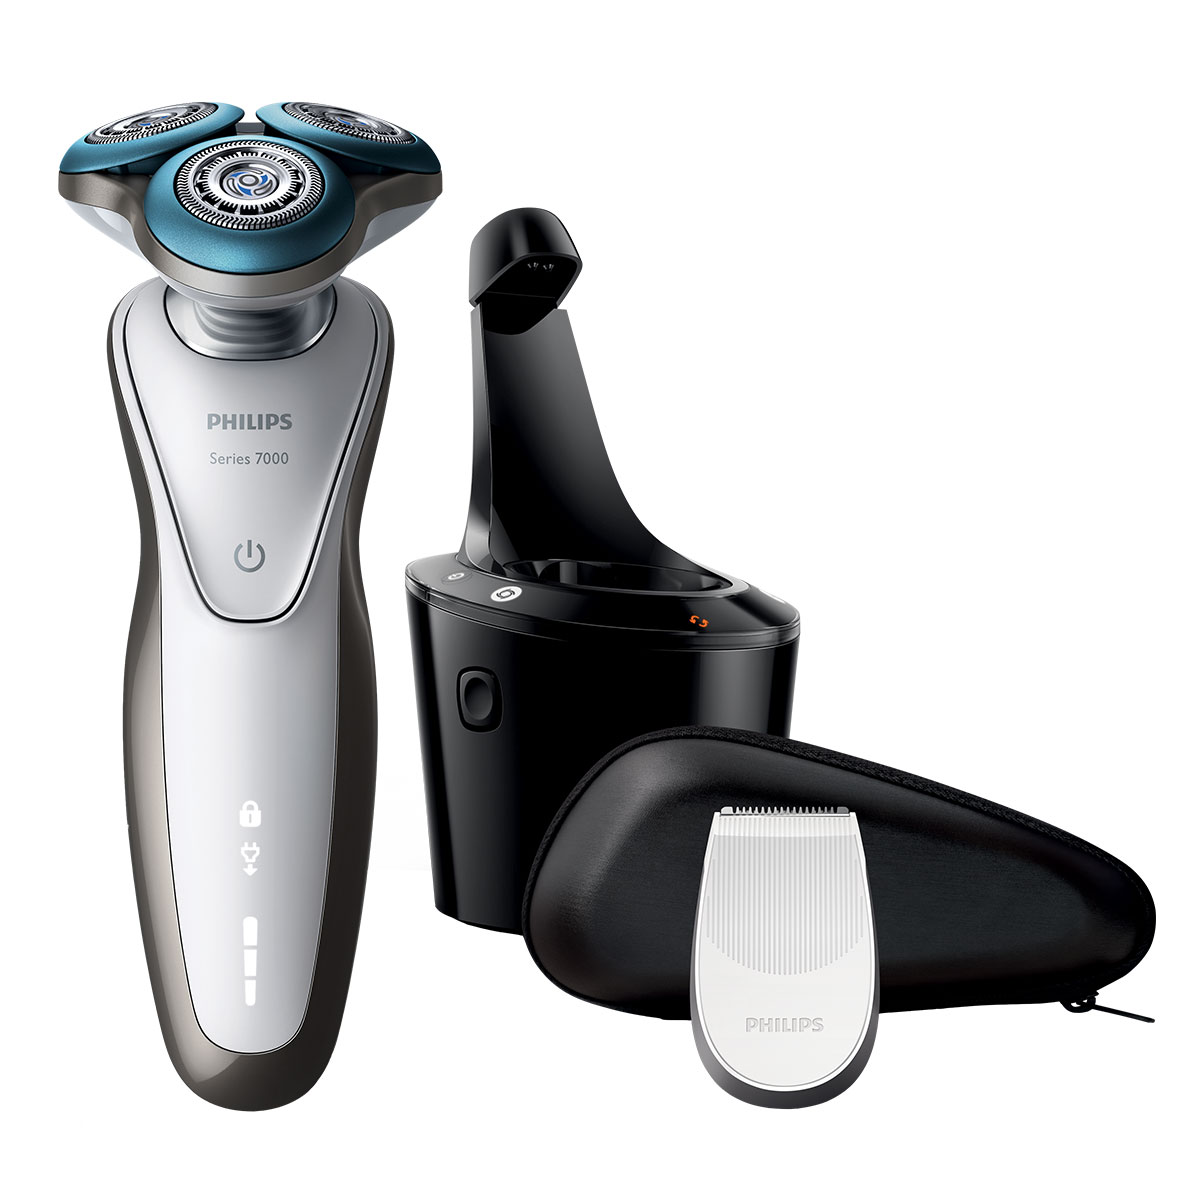 Philips barbermaskine - Series 7000 - S7710/26